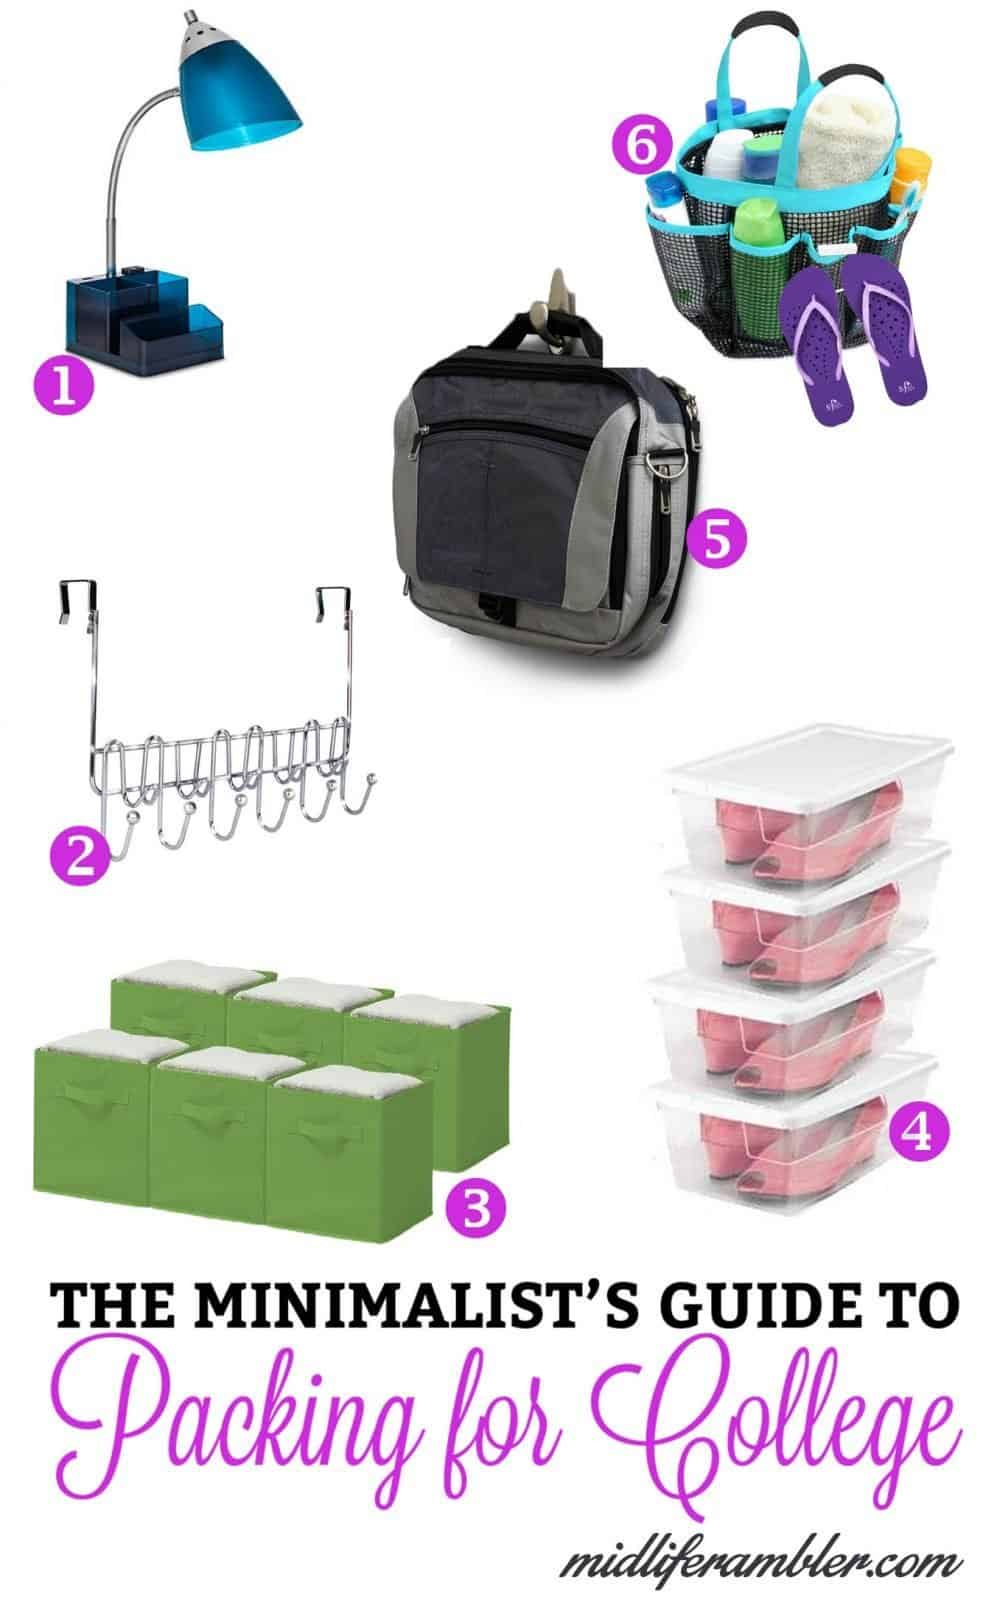 It's so hard to know what to buy for college and so easy to overbuy. I recently interviewed my daughter to find out what items she actually found helpful in keeping her dorm room organized during this past year. Here's a quick list of the products she found most helpful.